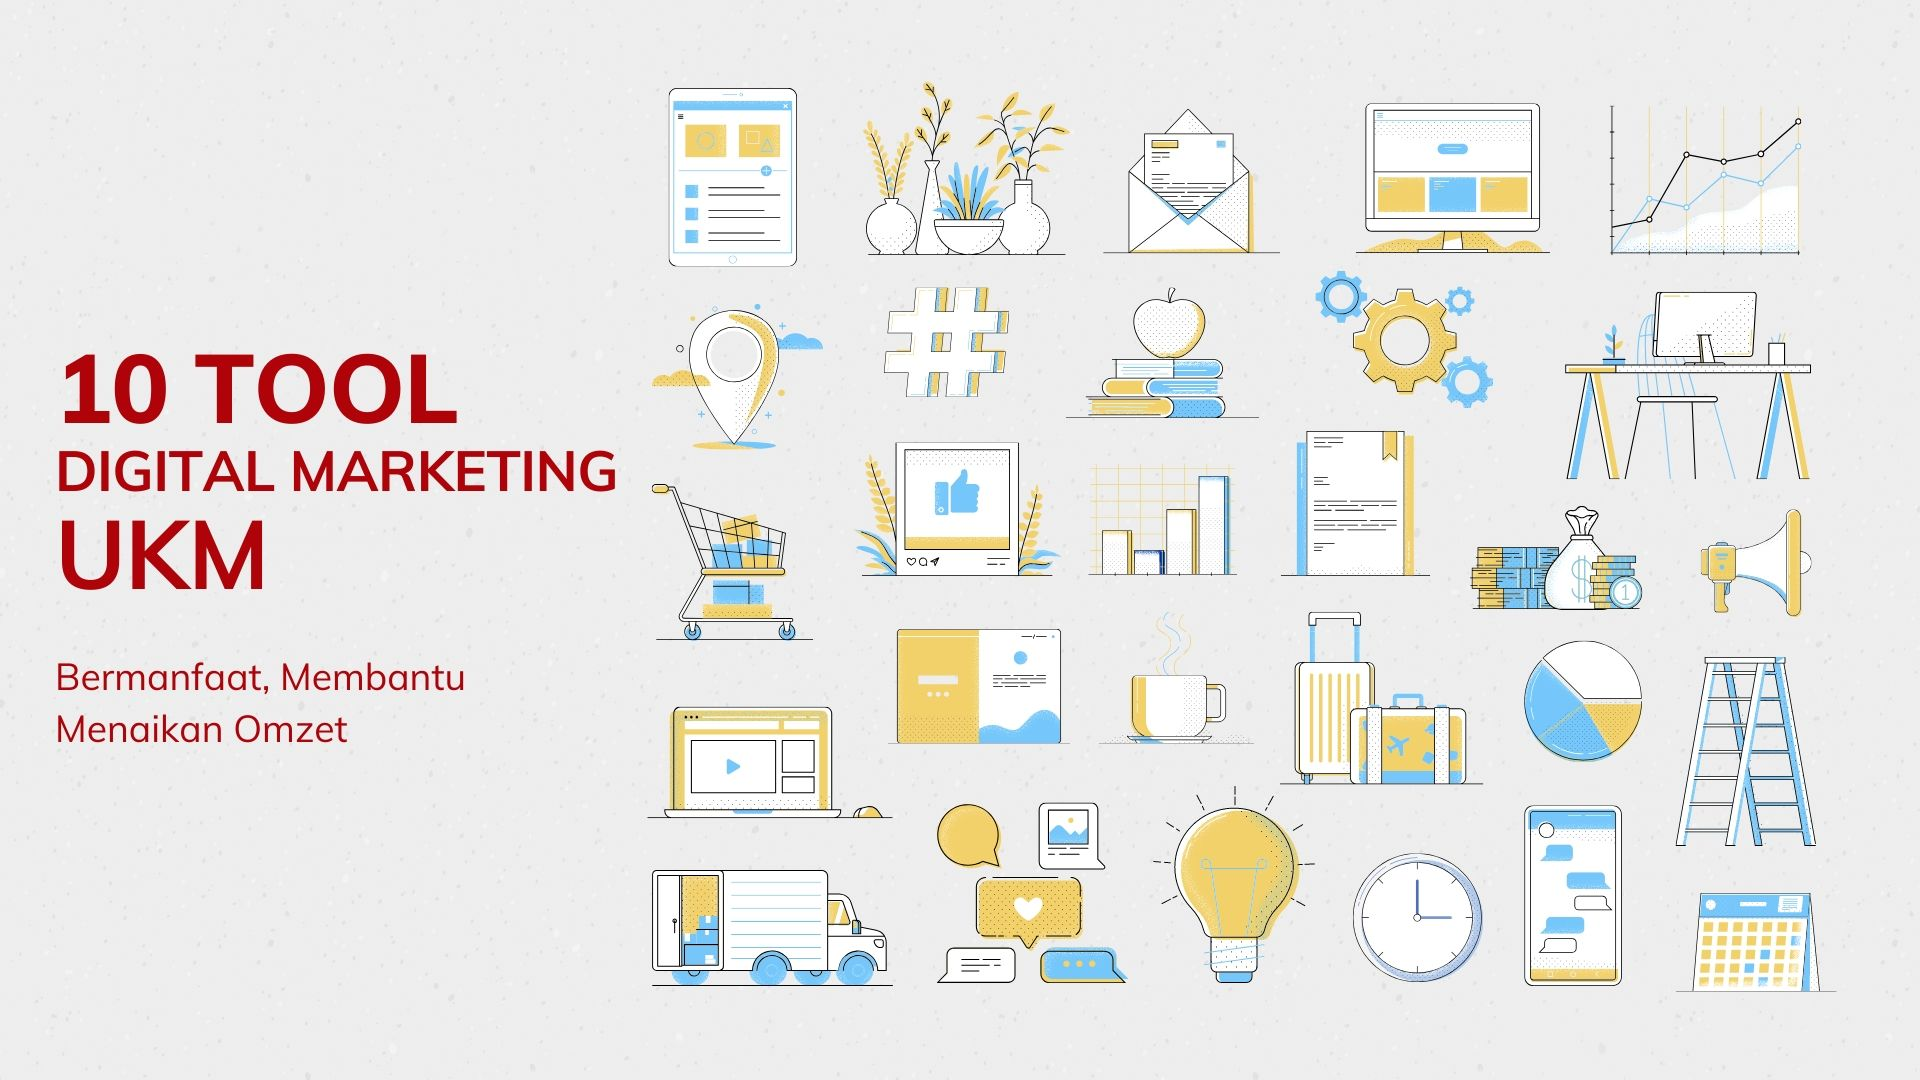 10 Tool Digital Marketing untuk UKM 2020